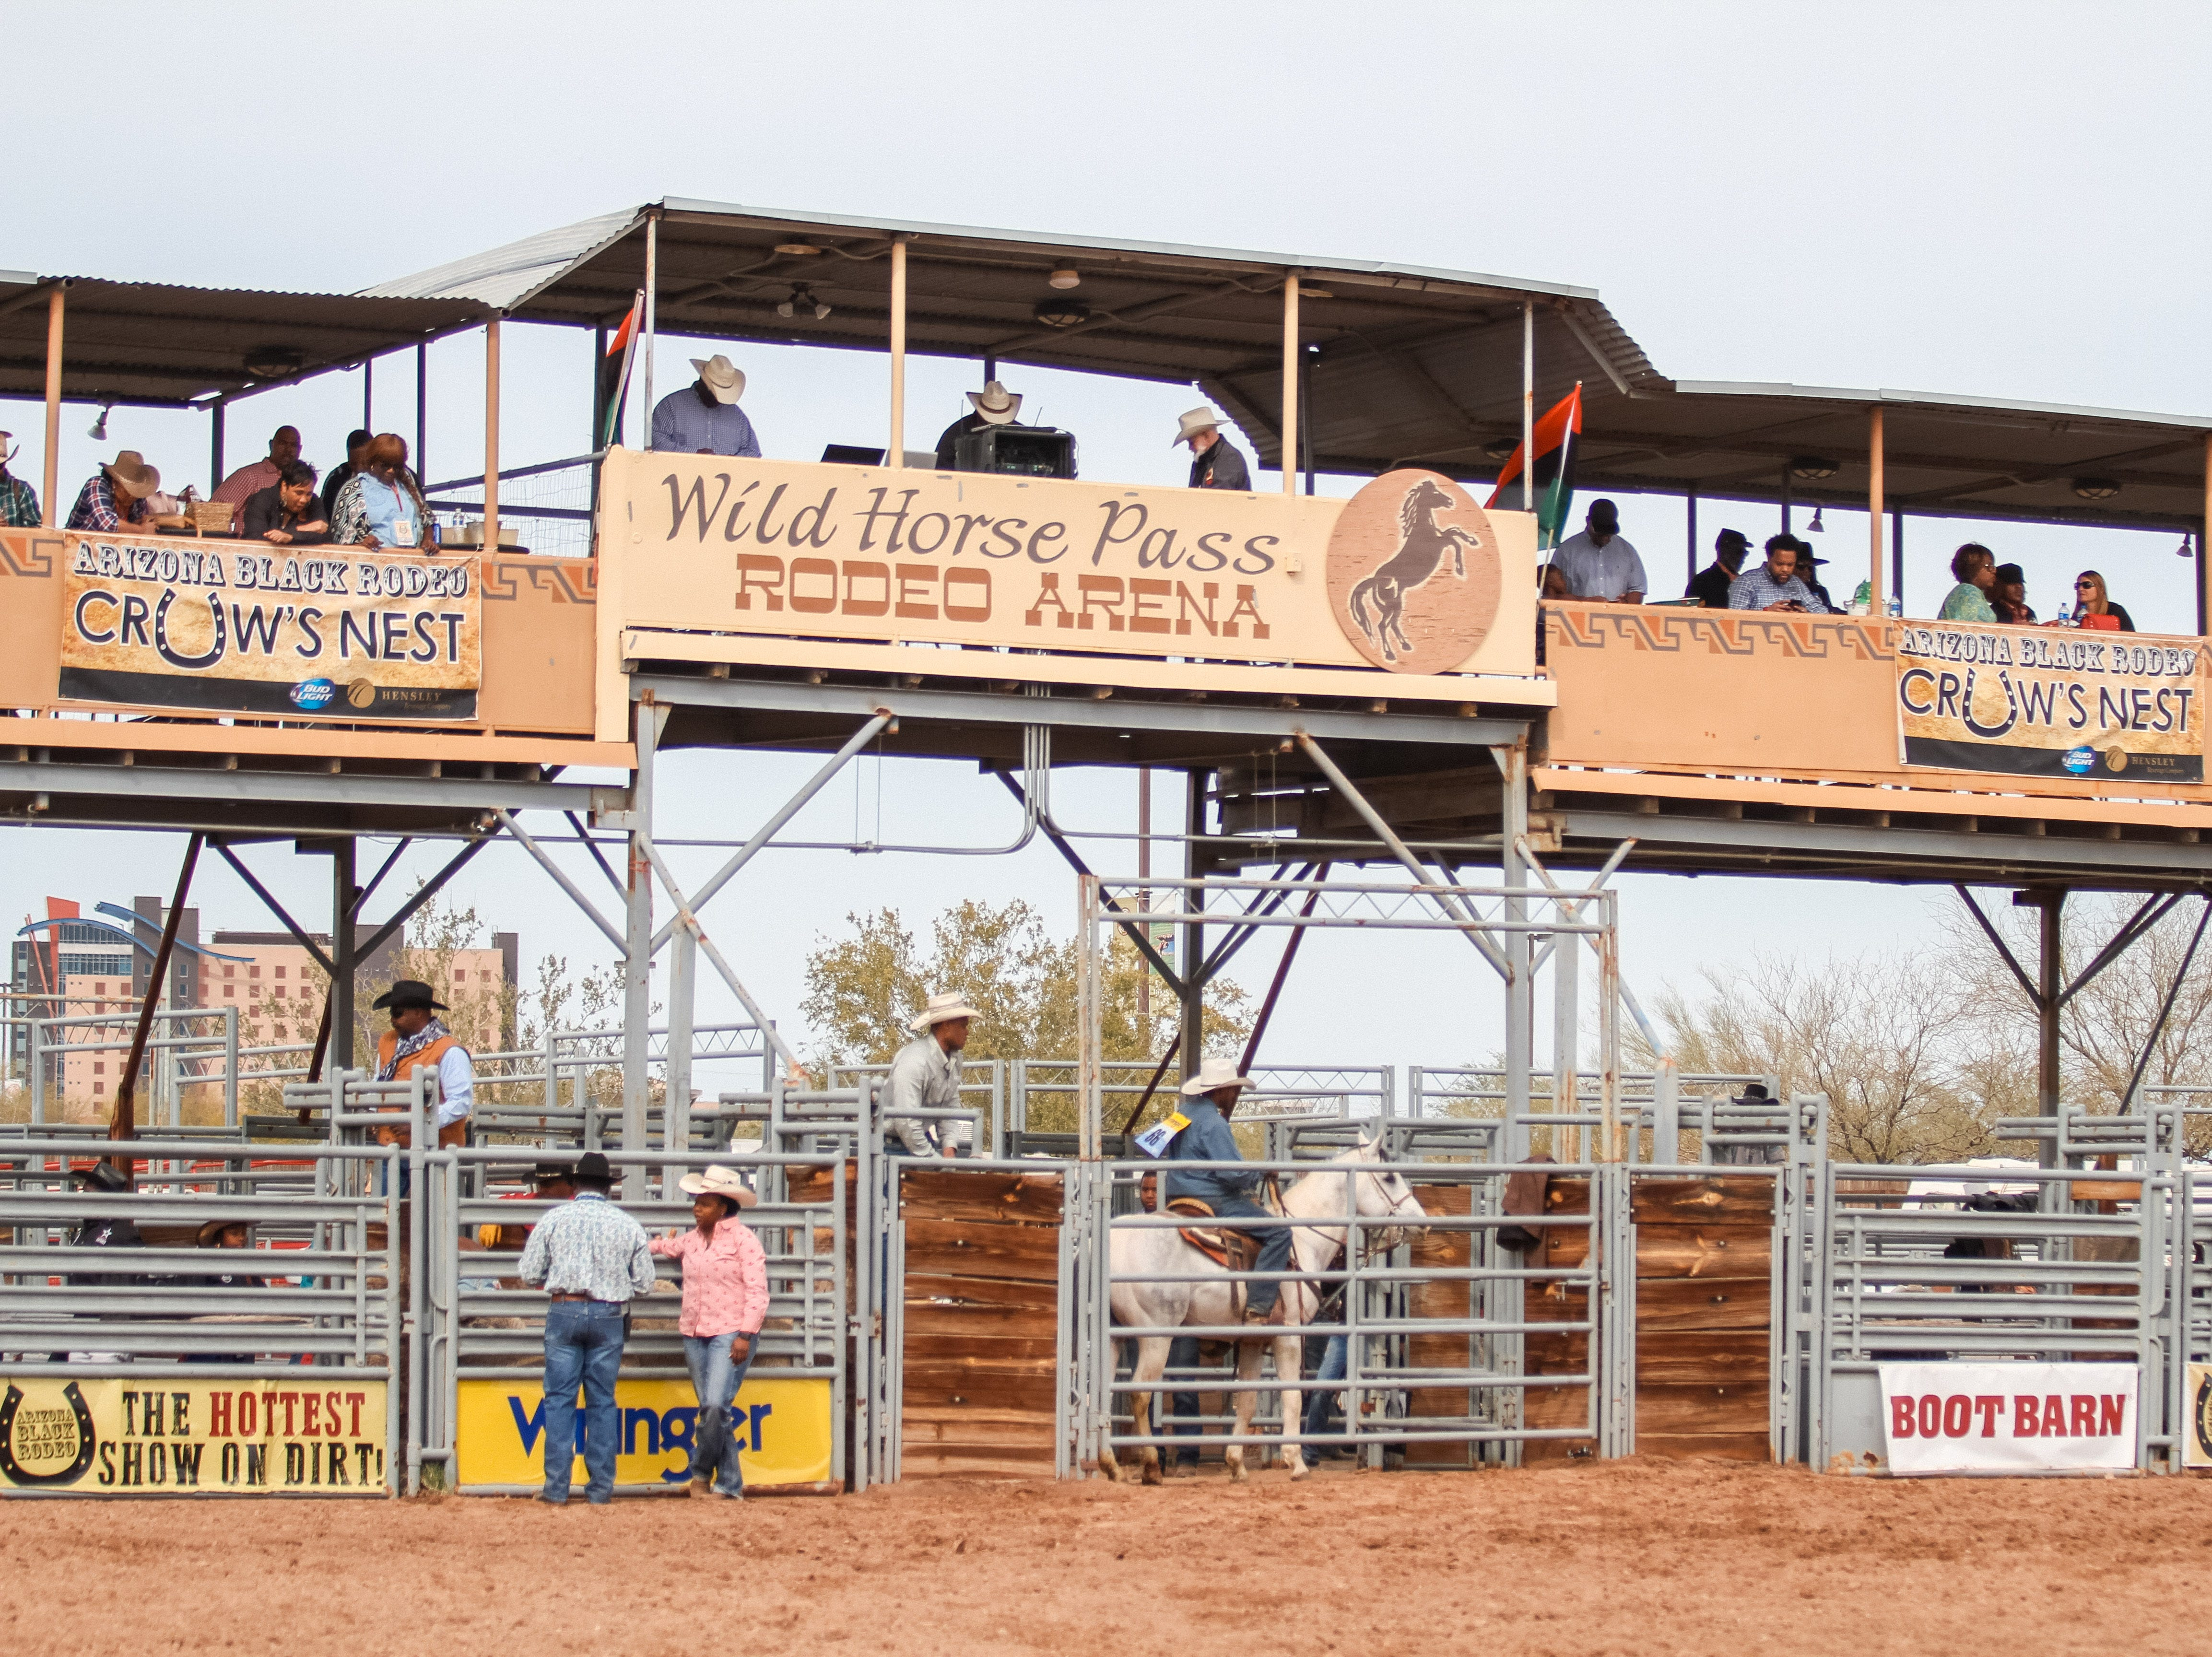 Riders compete at the Arizona Black Rodeo in Chandler, Arizona on Saturday, March 9, 2019.